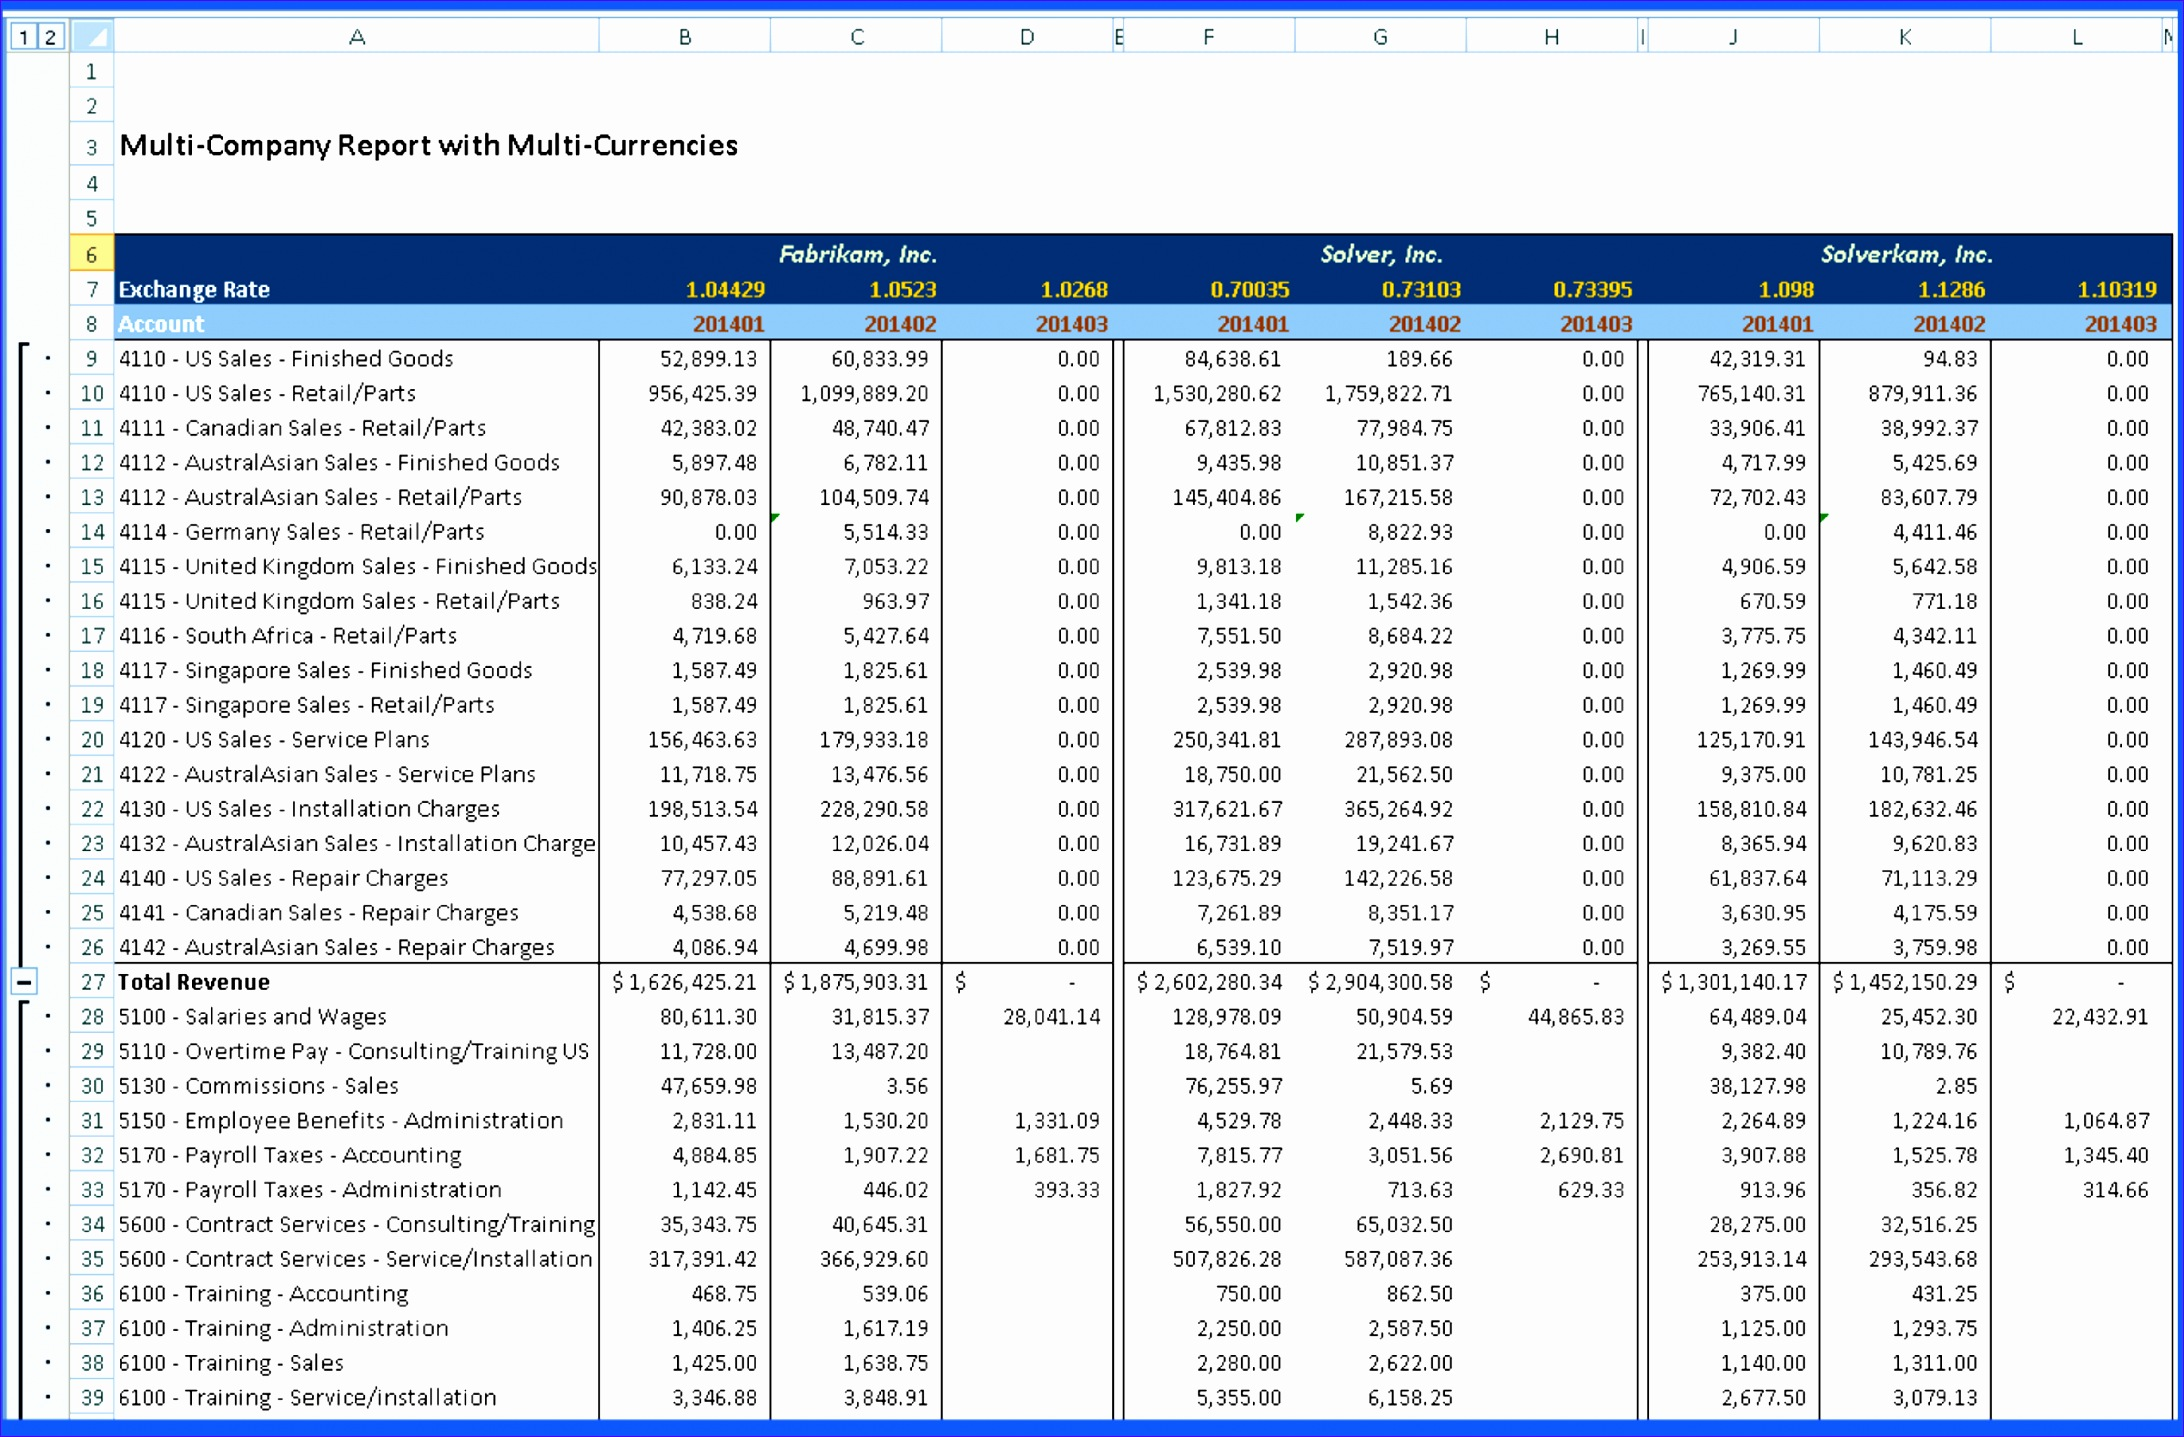 Excel Templates for Financial Statements Euxee Luxury solutionfilehx Id=